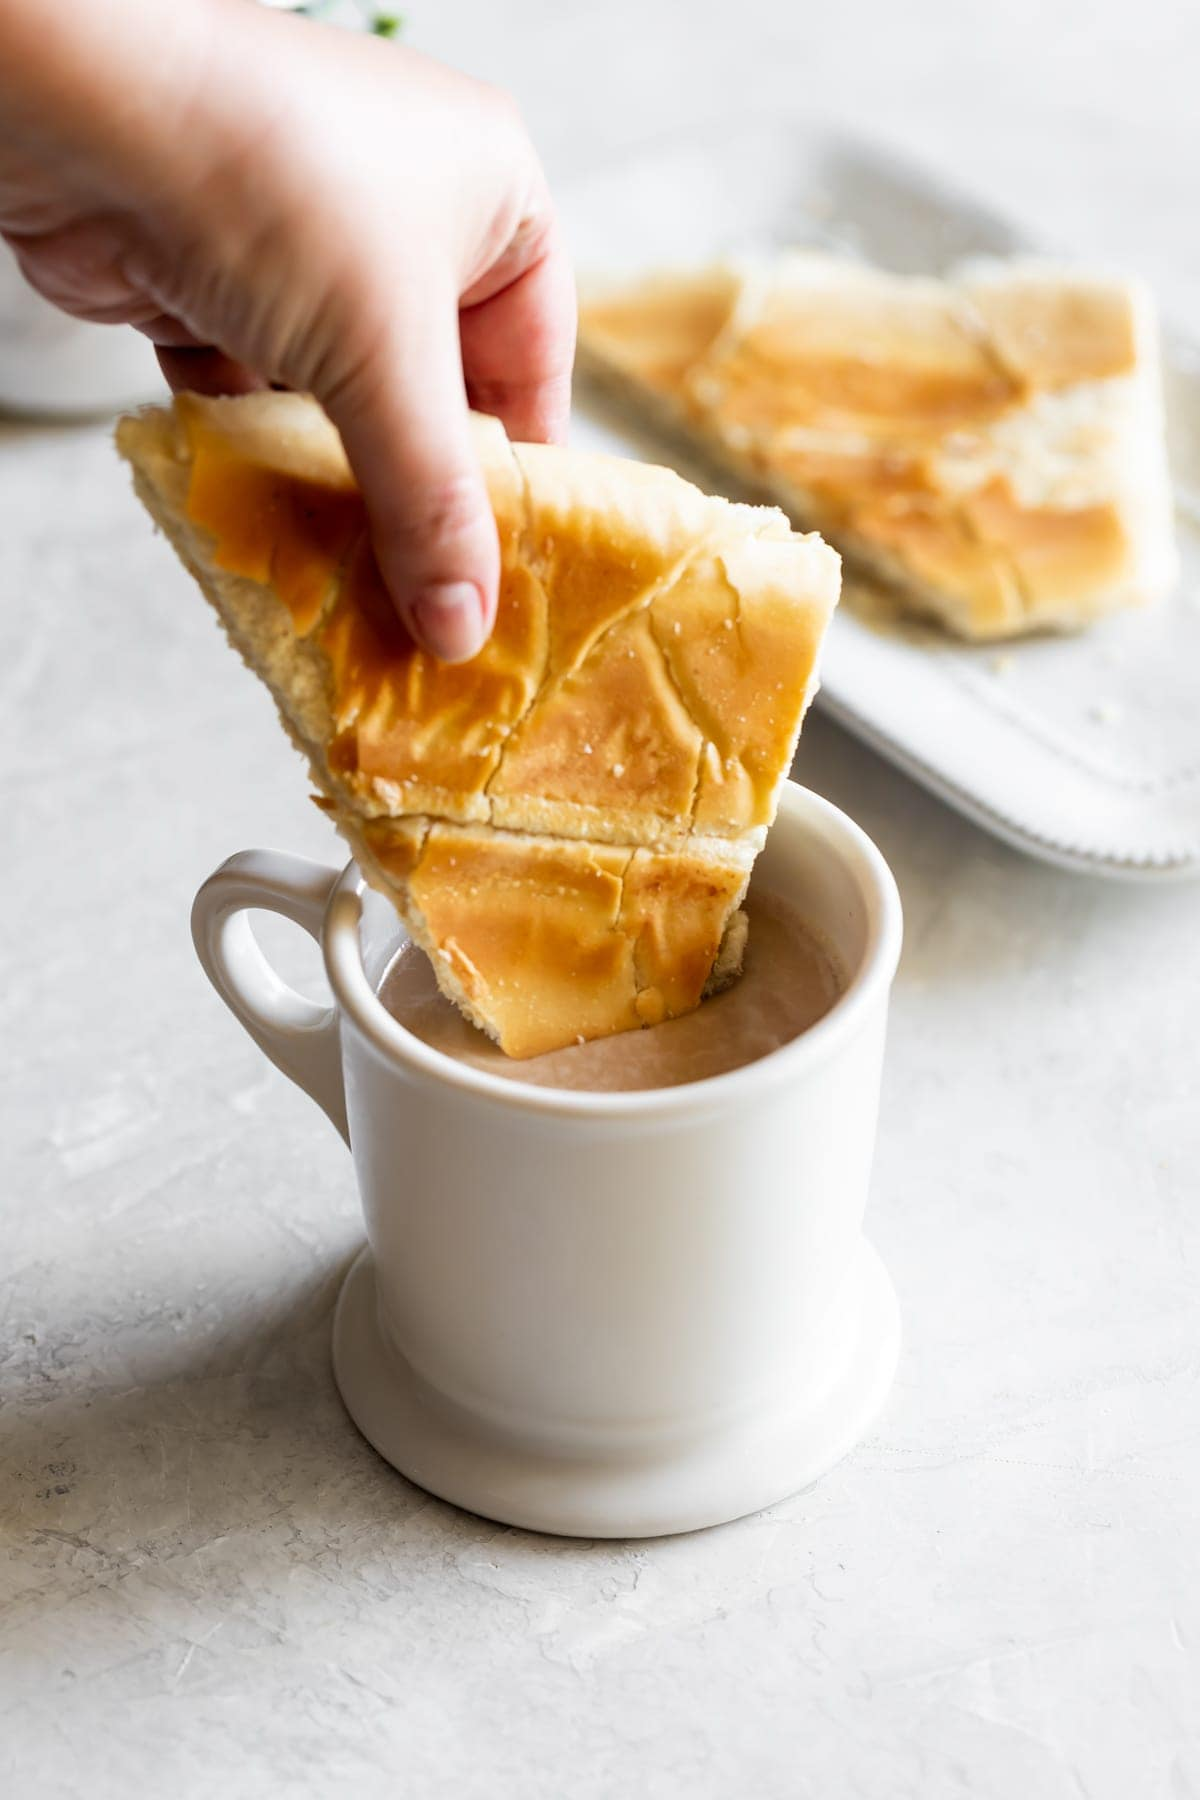 Cuban toast being dipped into cafe con leche